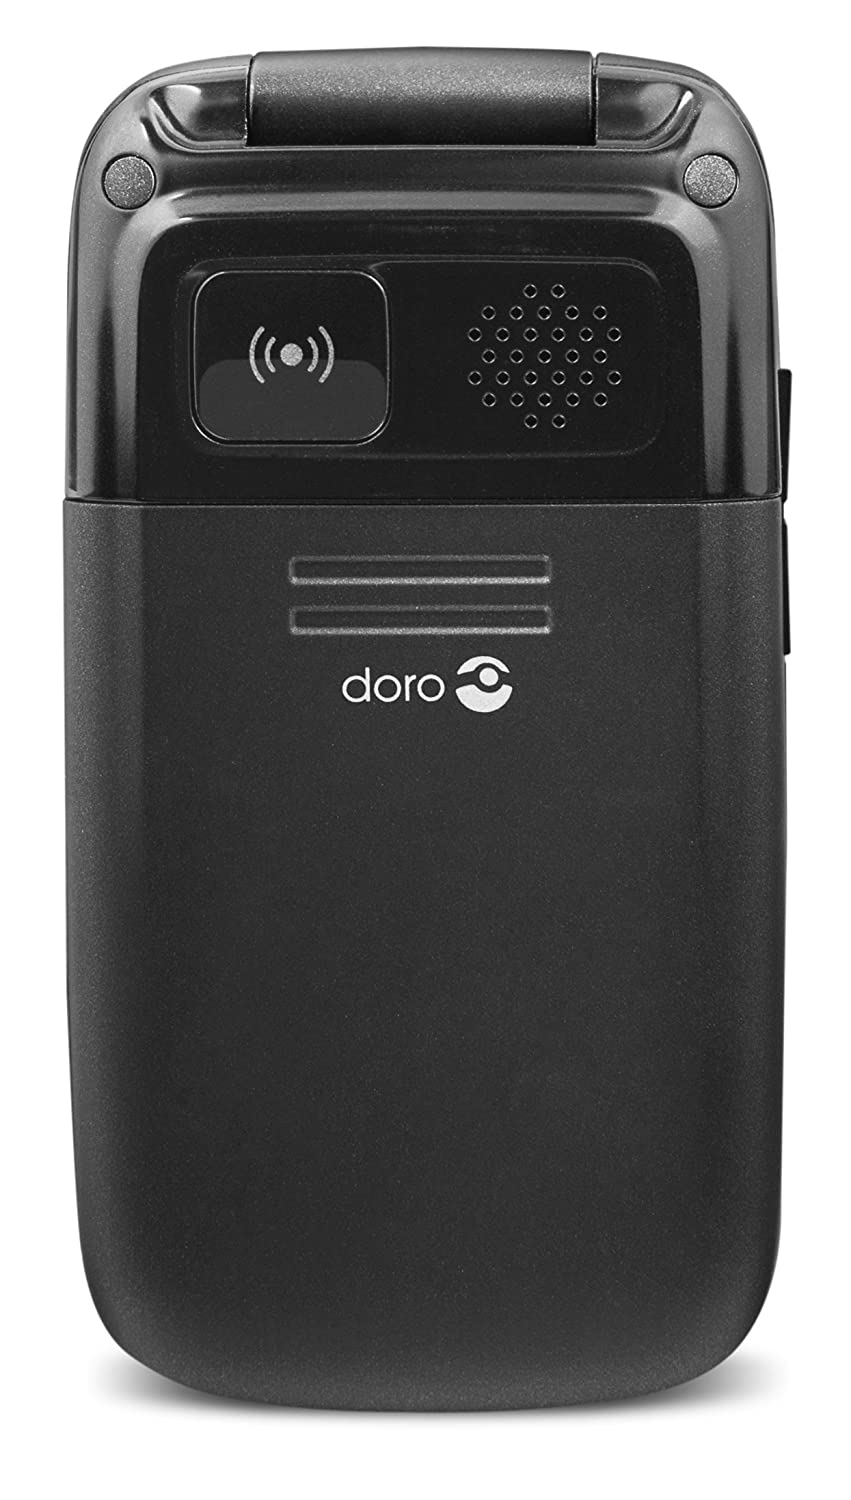 Doro Phoneeasy 612 2g Uk Sim Free Mobile Phone Black Amazon